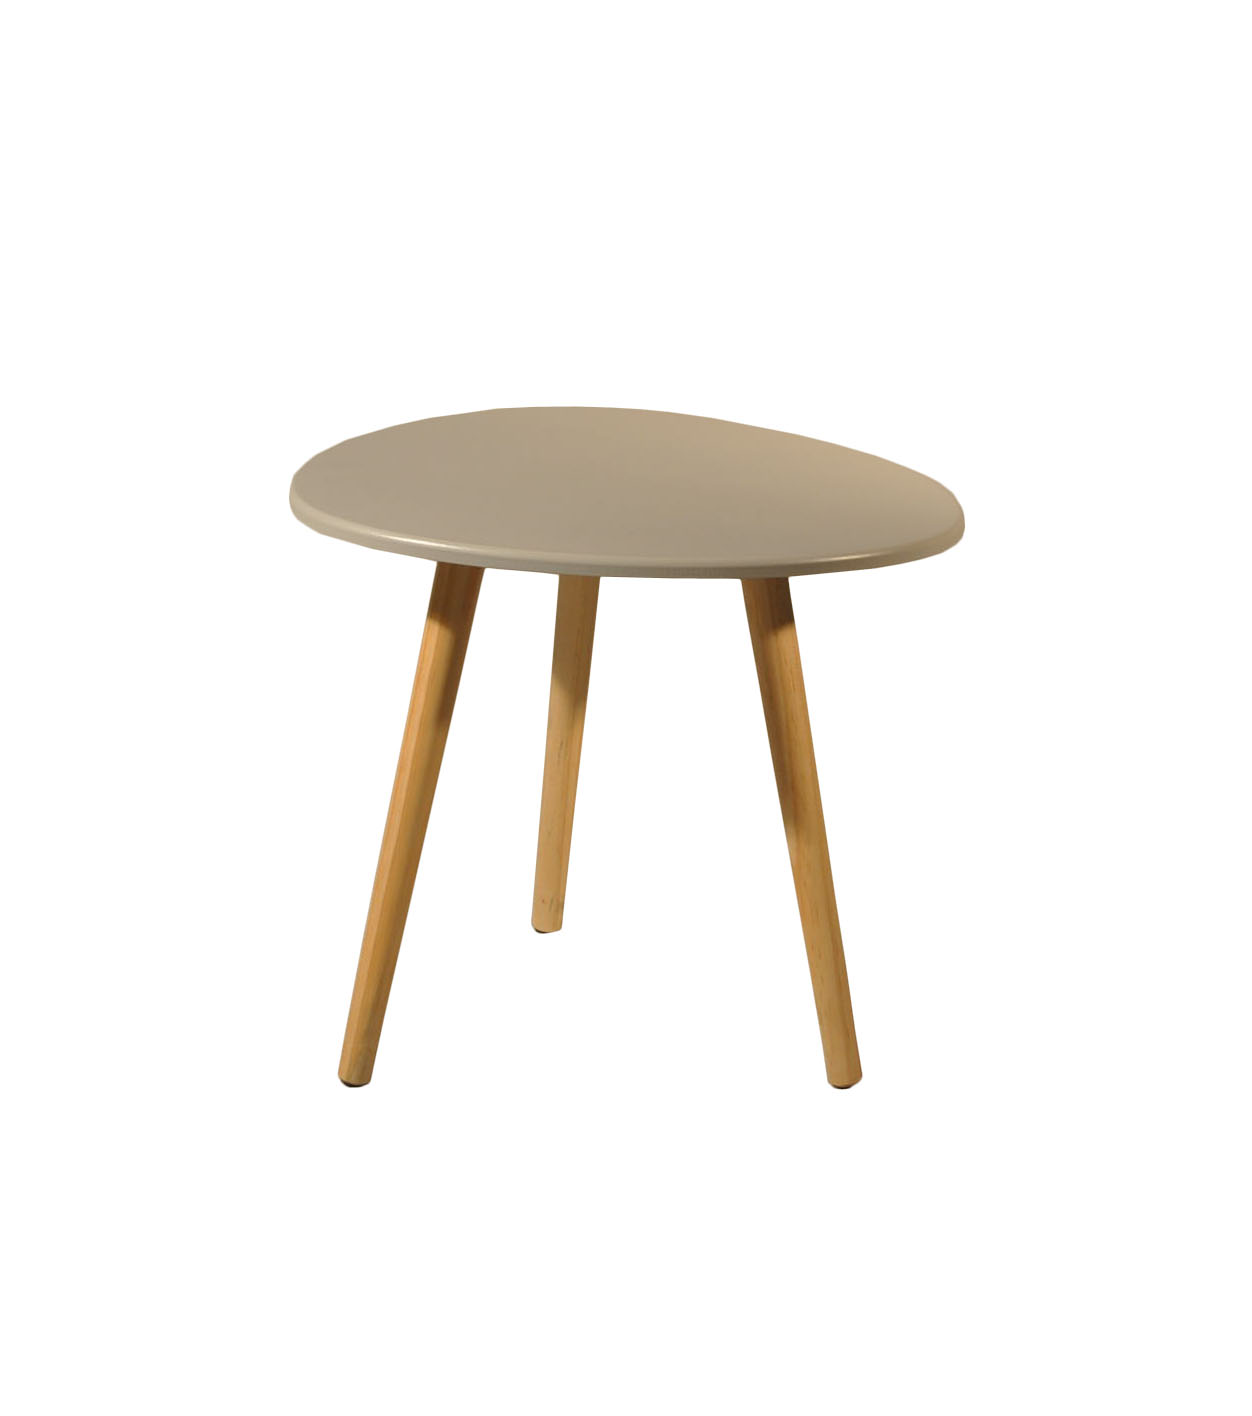 Petite table scandinave en forme de galet grise demeure for Table basse grise scandinave